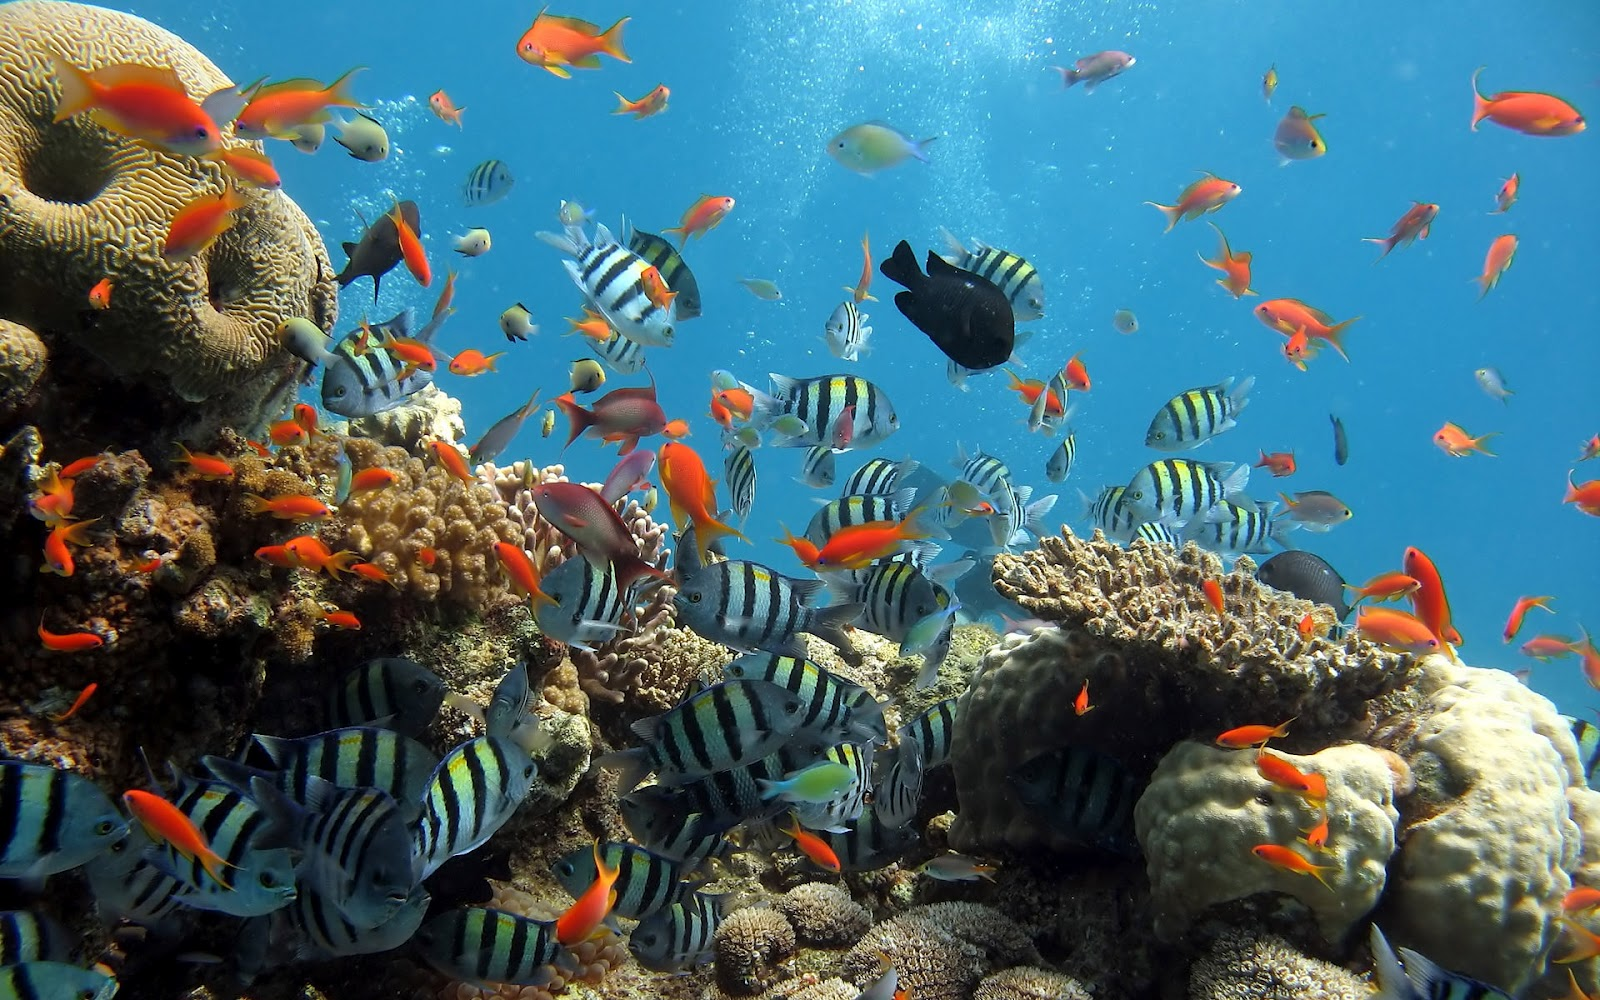 Top 27 Sea Animals Wallpapers In Hd: Christianhdwallpaper: Coral Reef Wallpapers